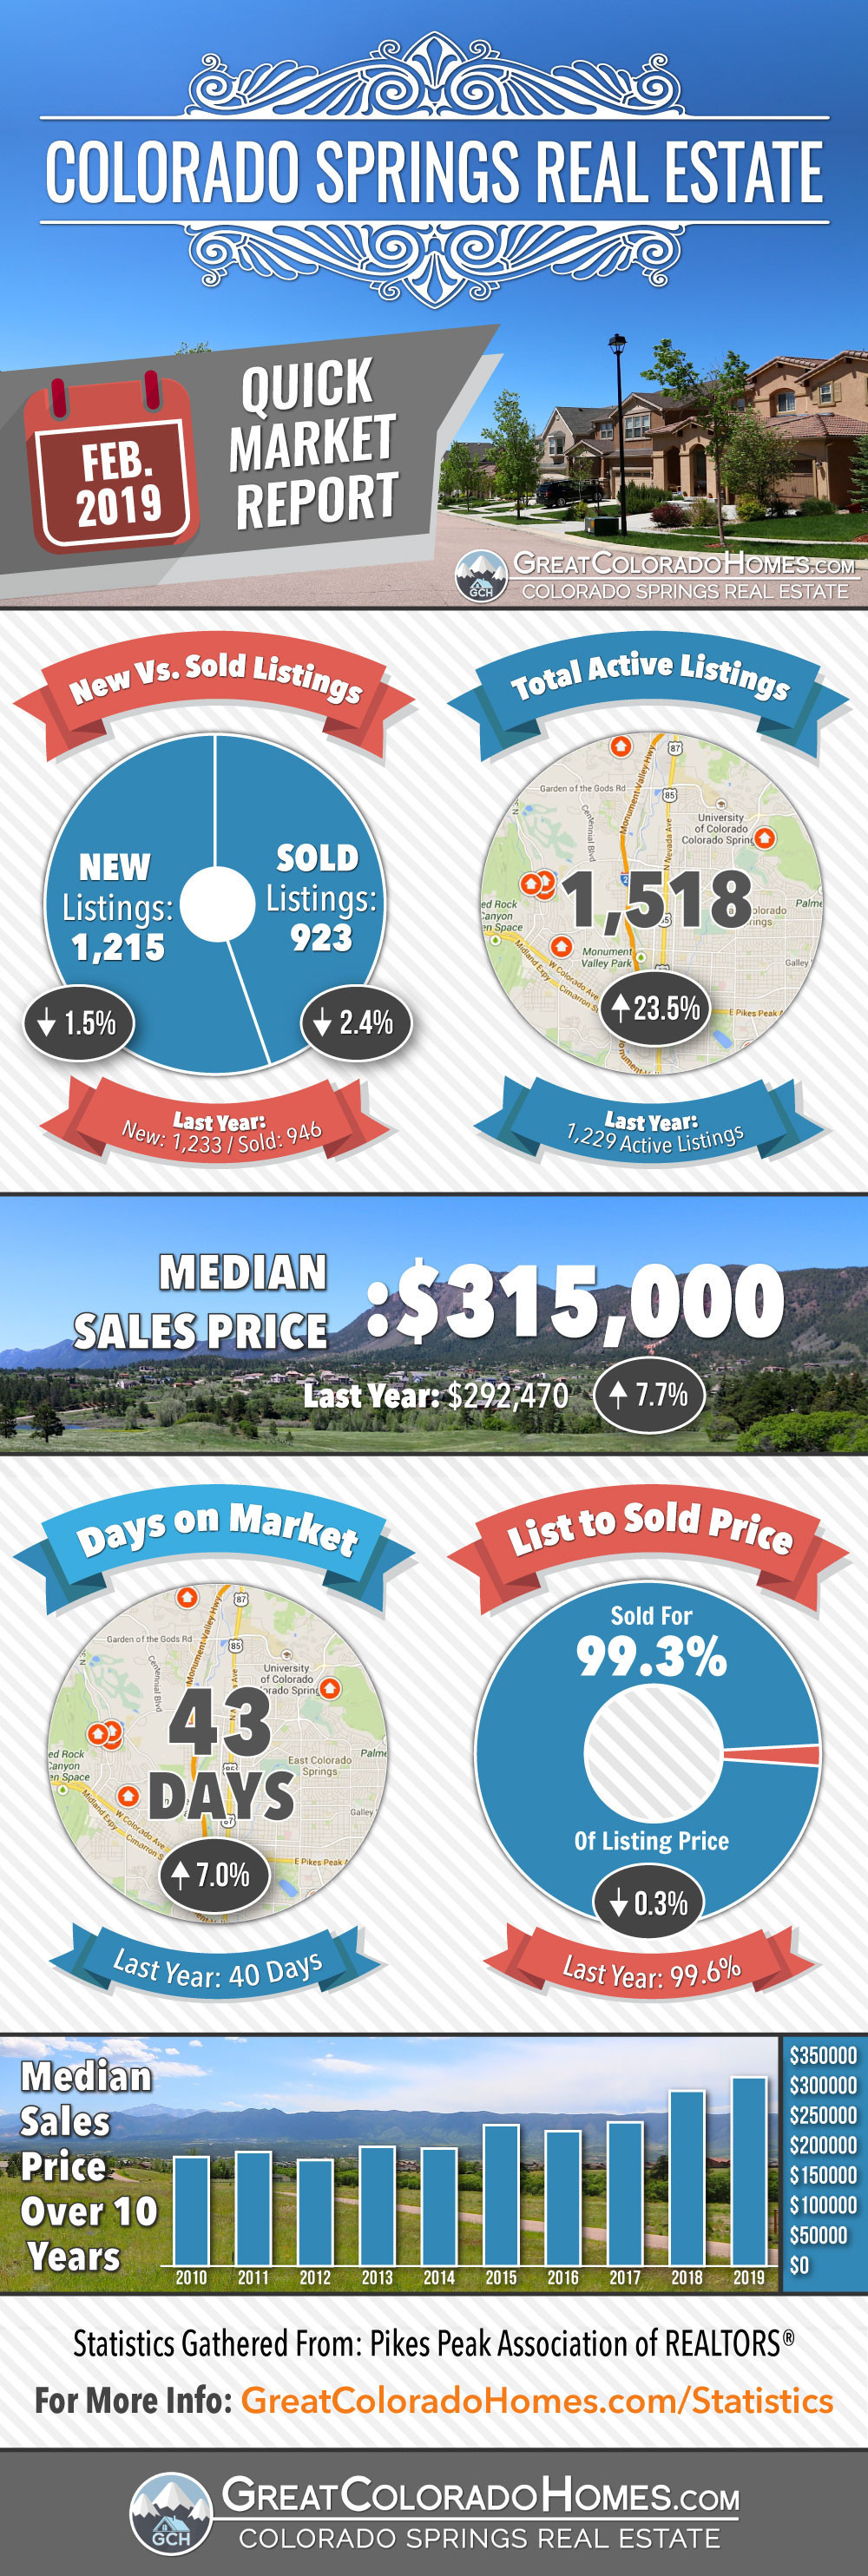 February 2019 Colorado Springs Real Estate Market Statistics Infographic